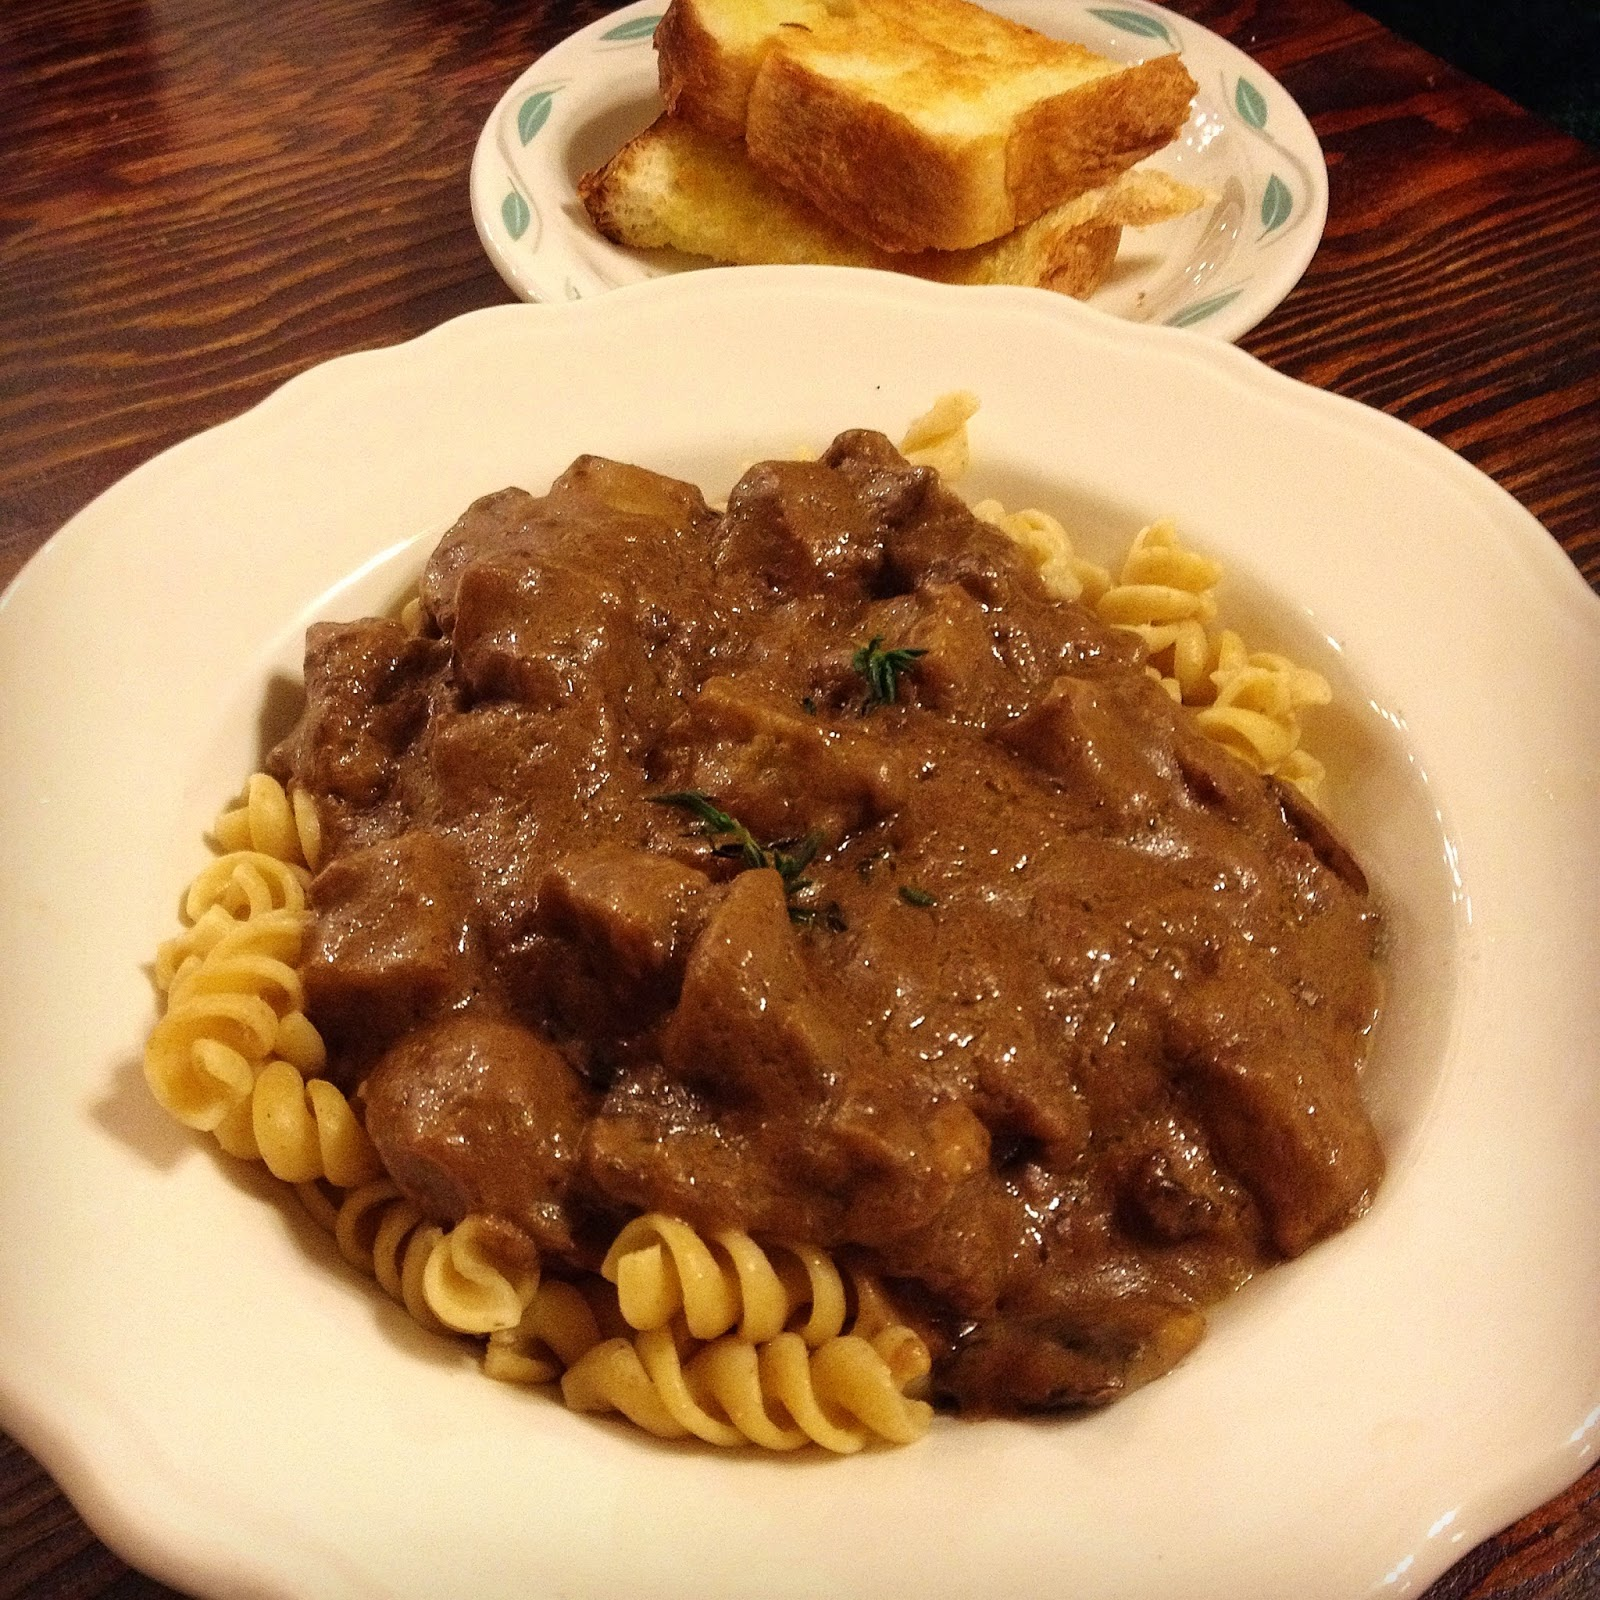 Seitan Stroganoff and House-made Garlic Bread Dinner Special at Heather's Restaurant Bay City, MIchigan